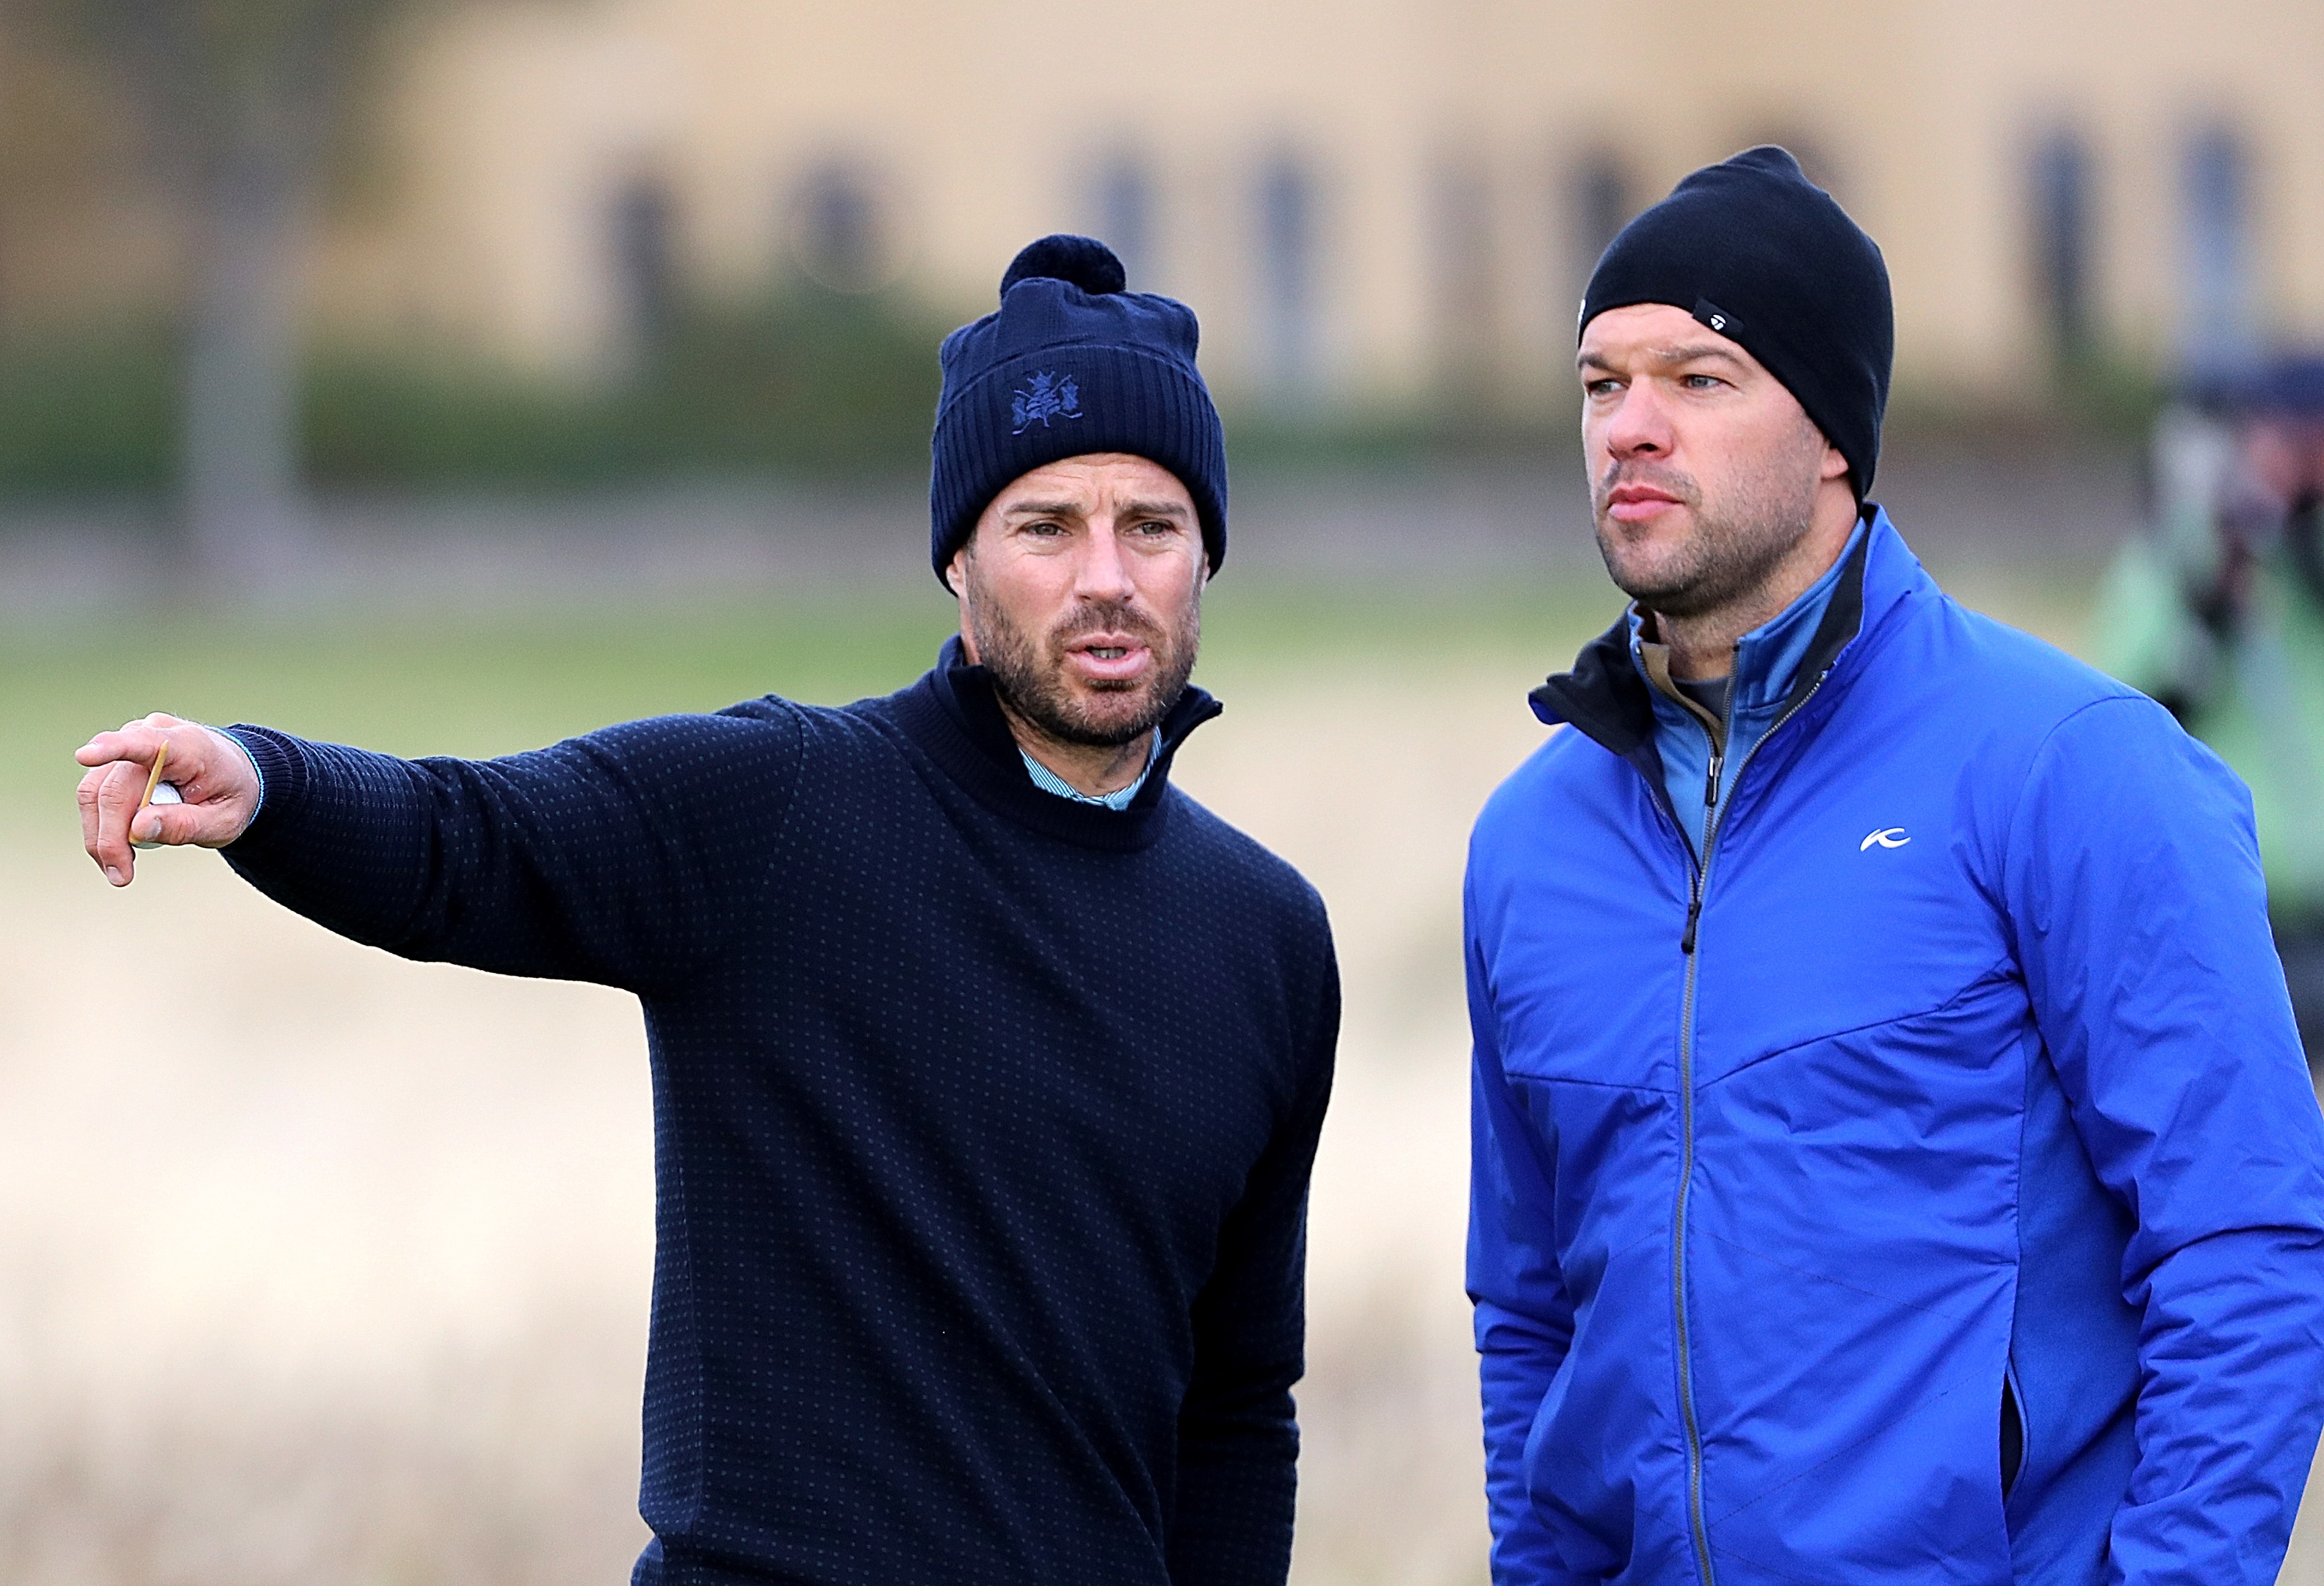 Jamie Redknapp and Michael Ballack on the second tee of the Old Course.